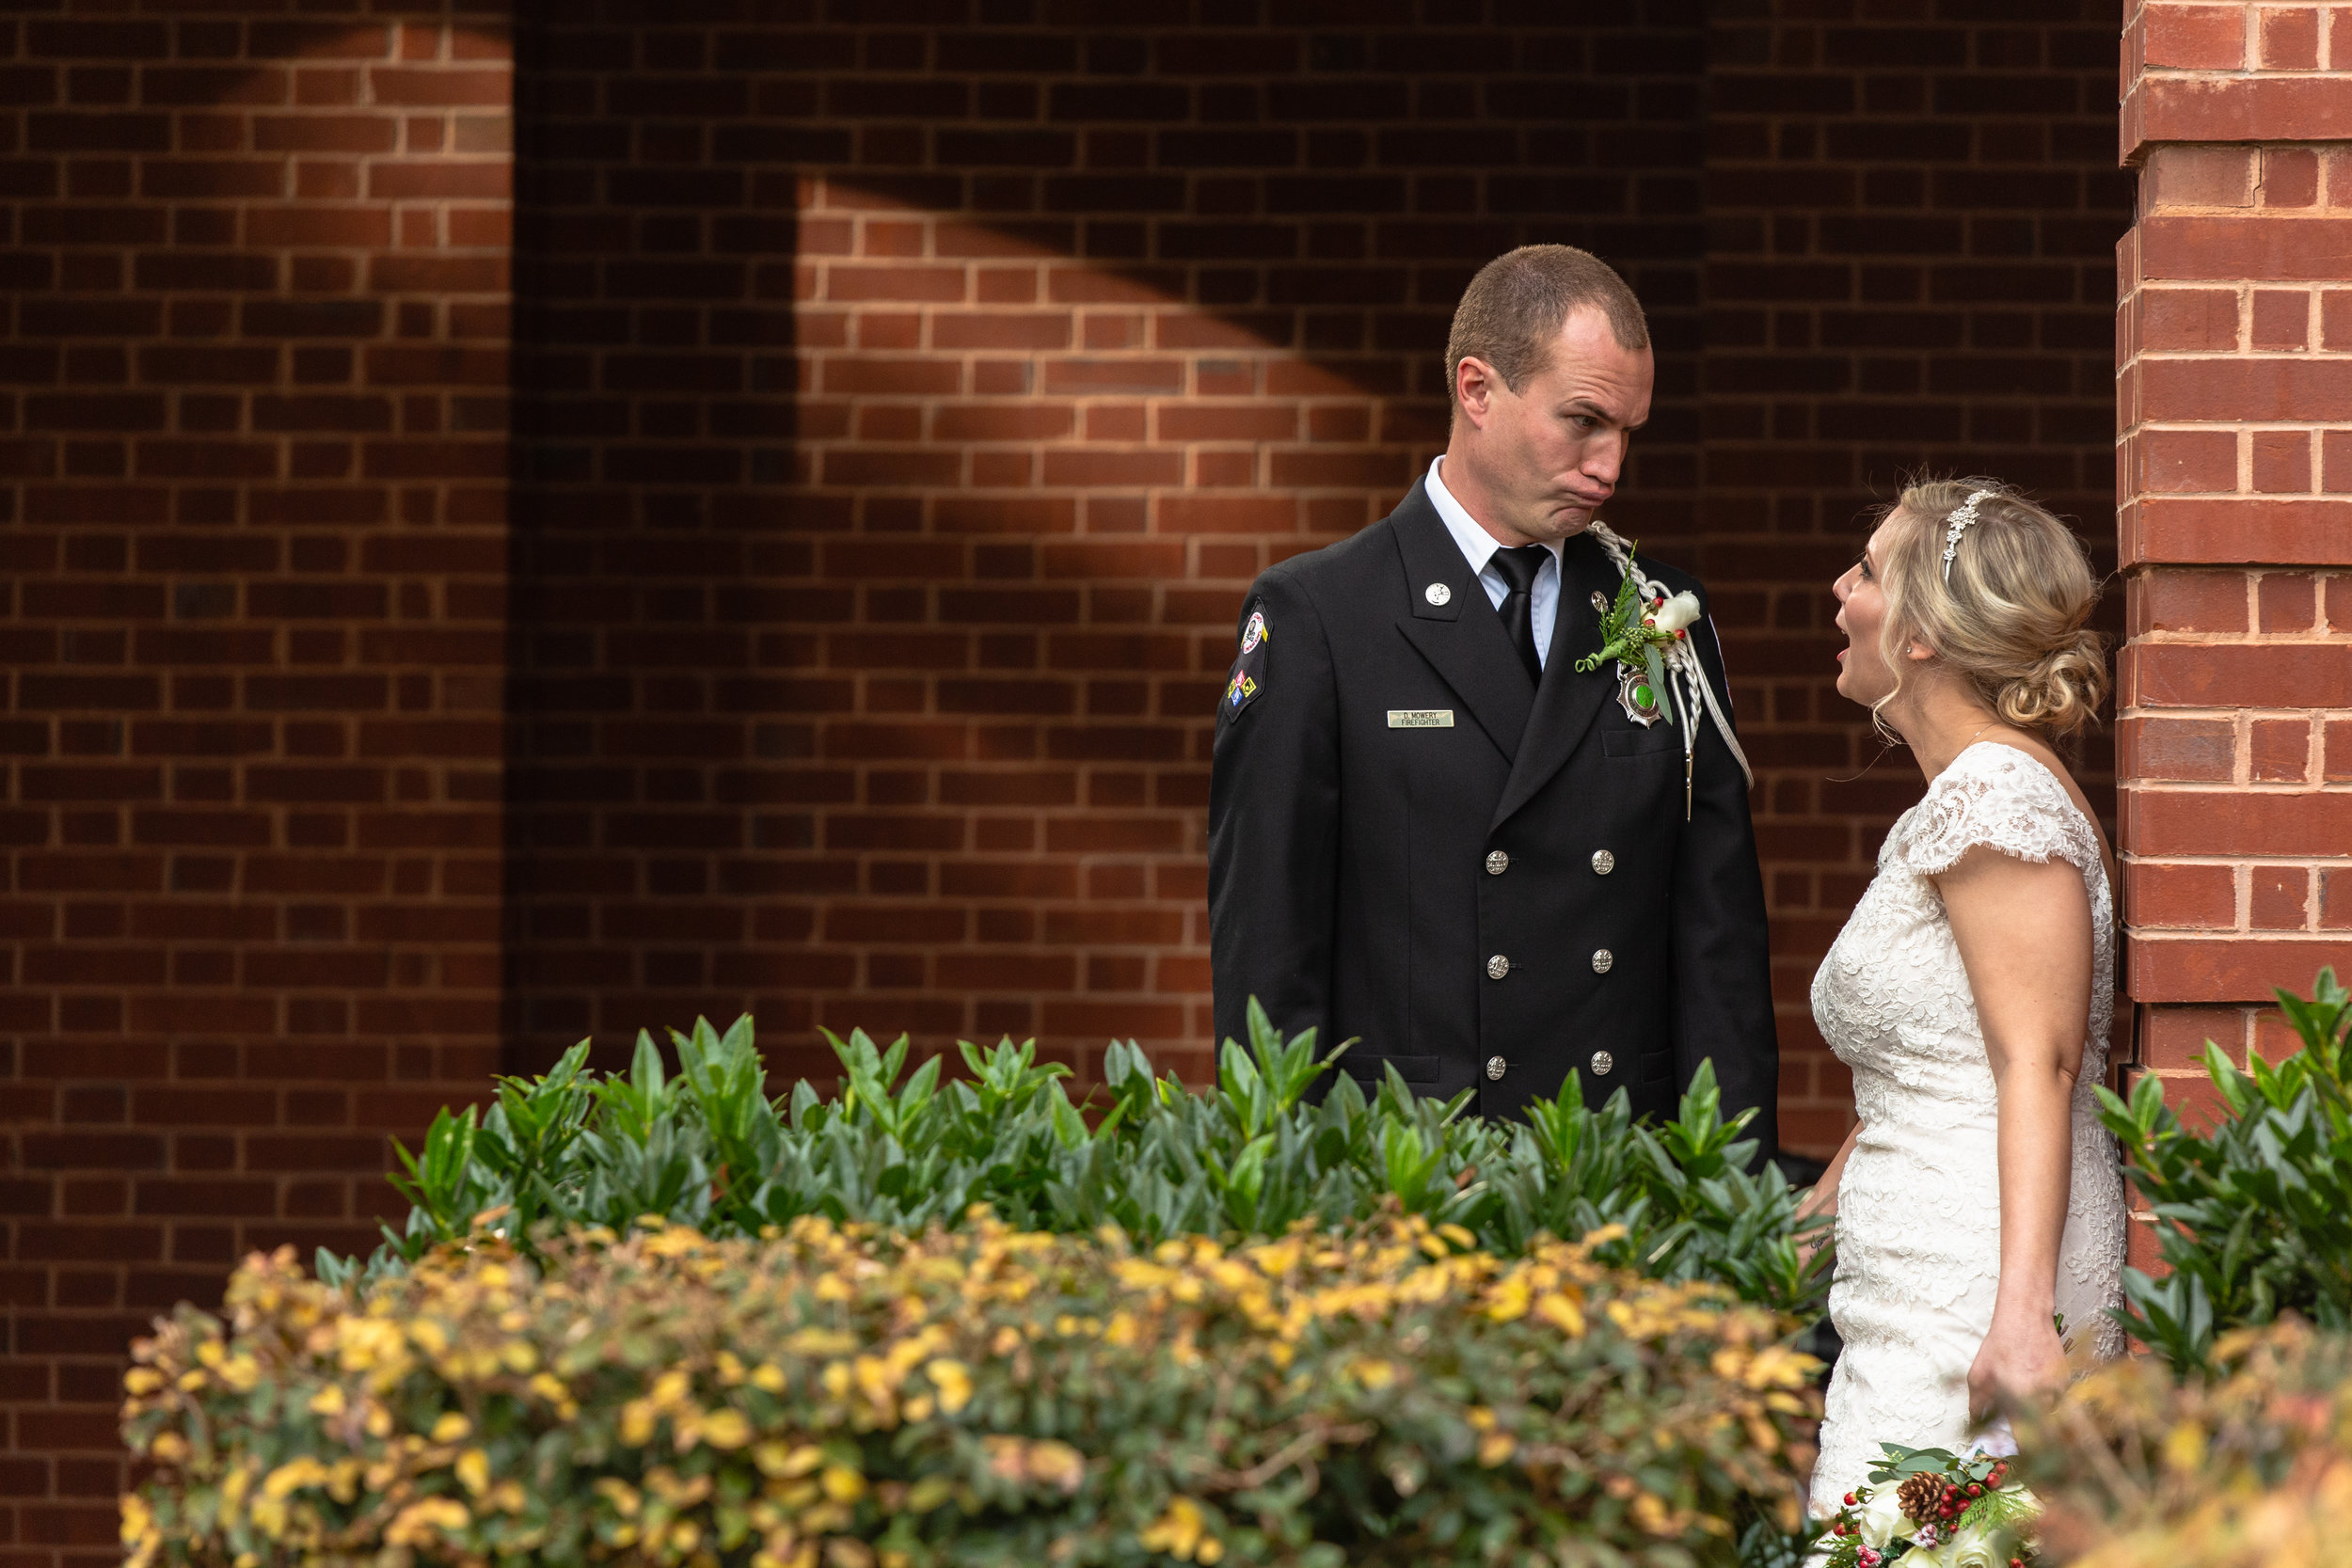 danielle + drew - Knoxville Courthouse, Knoxville, Tennessee